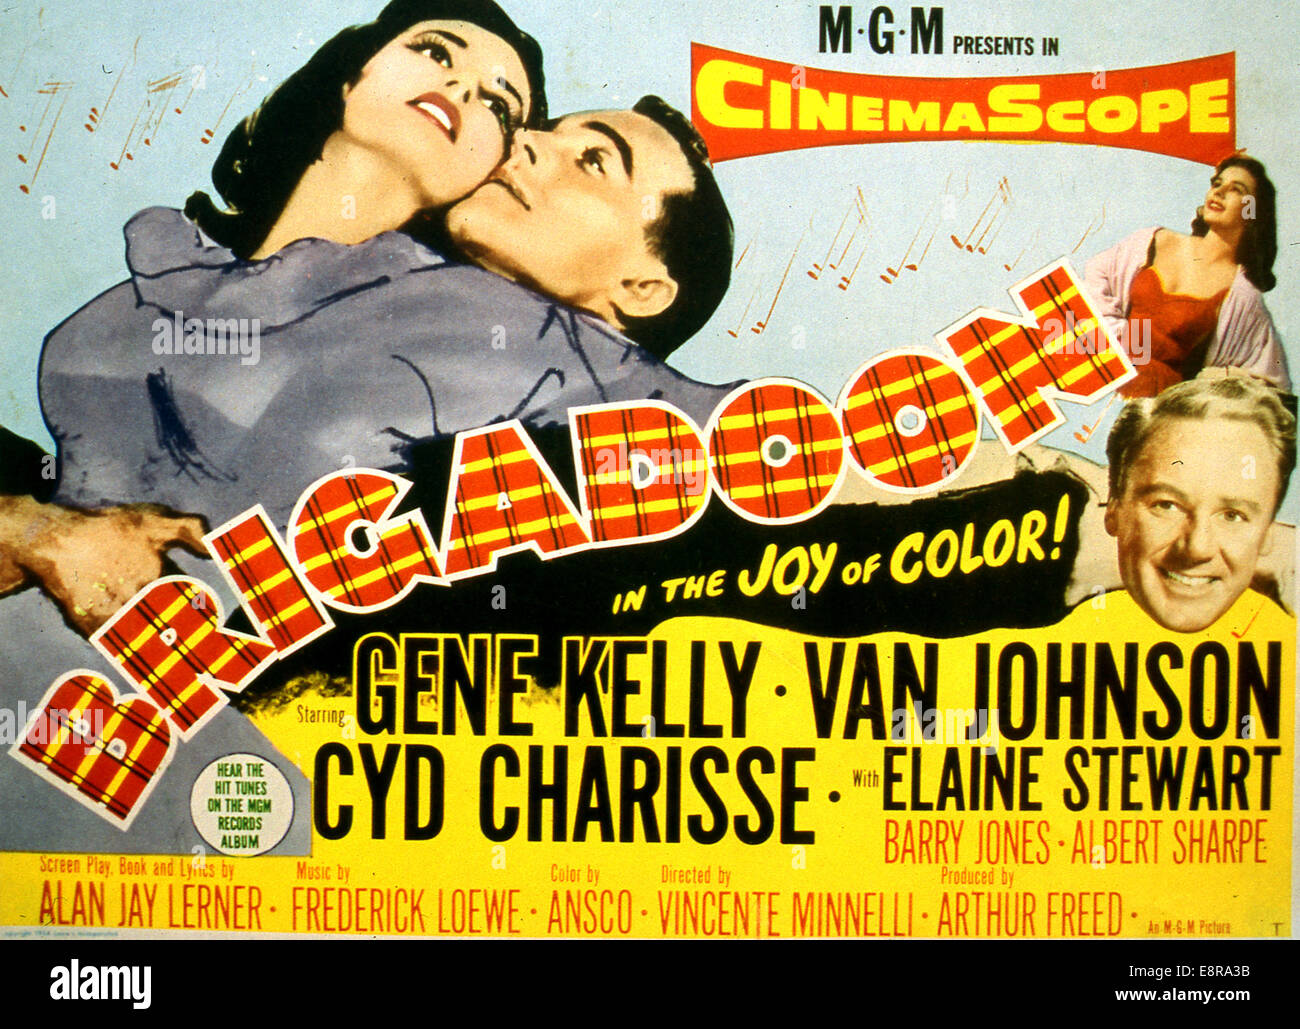 https://i0.wp.com/c8.alamy.com/comp/E8RA3B/brigadoon-poster-for-1954-mgm-film-musical-with-cyd-charisse-and-gene-E8RA3B.jpg